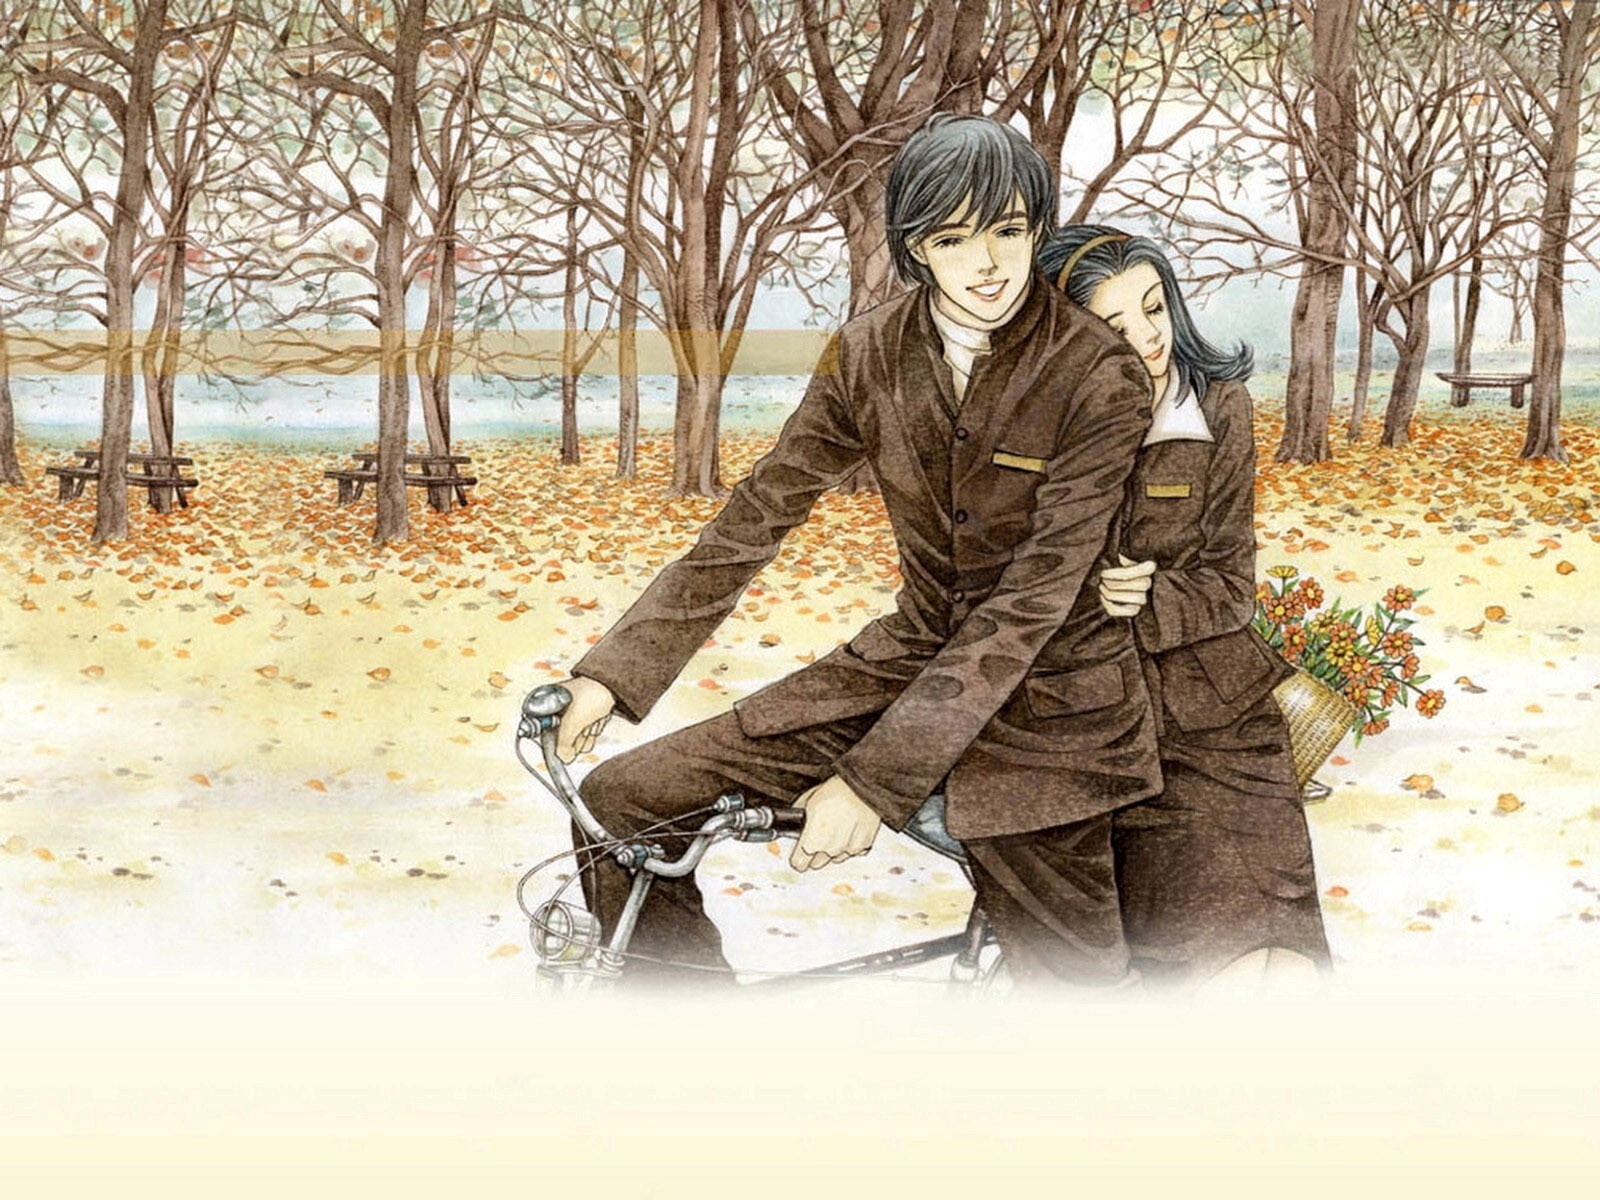 Romantic Couple on Bicycle Drawing Wallpapers | HD Wallpapers